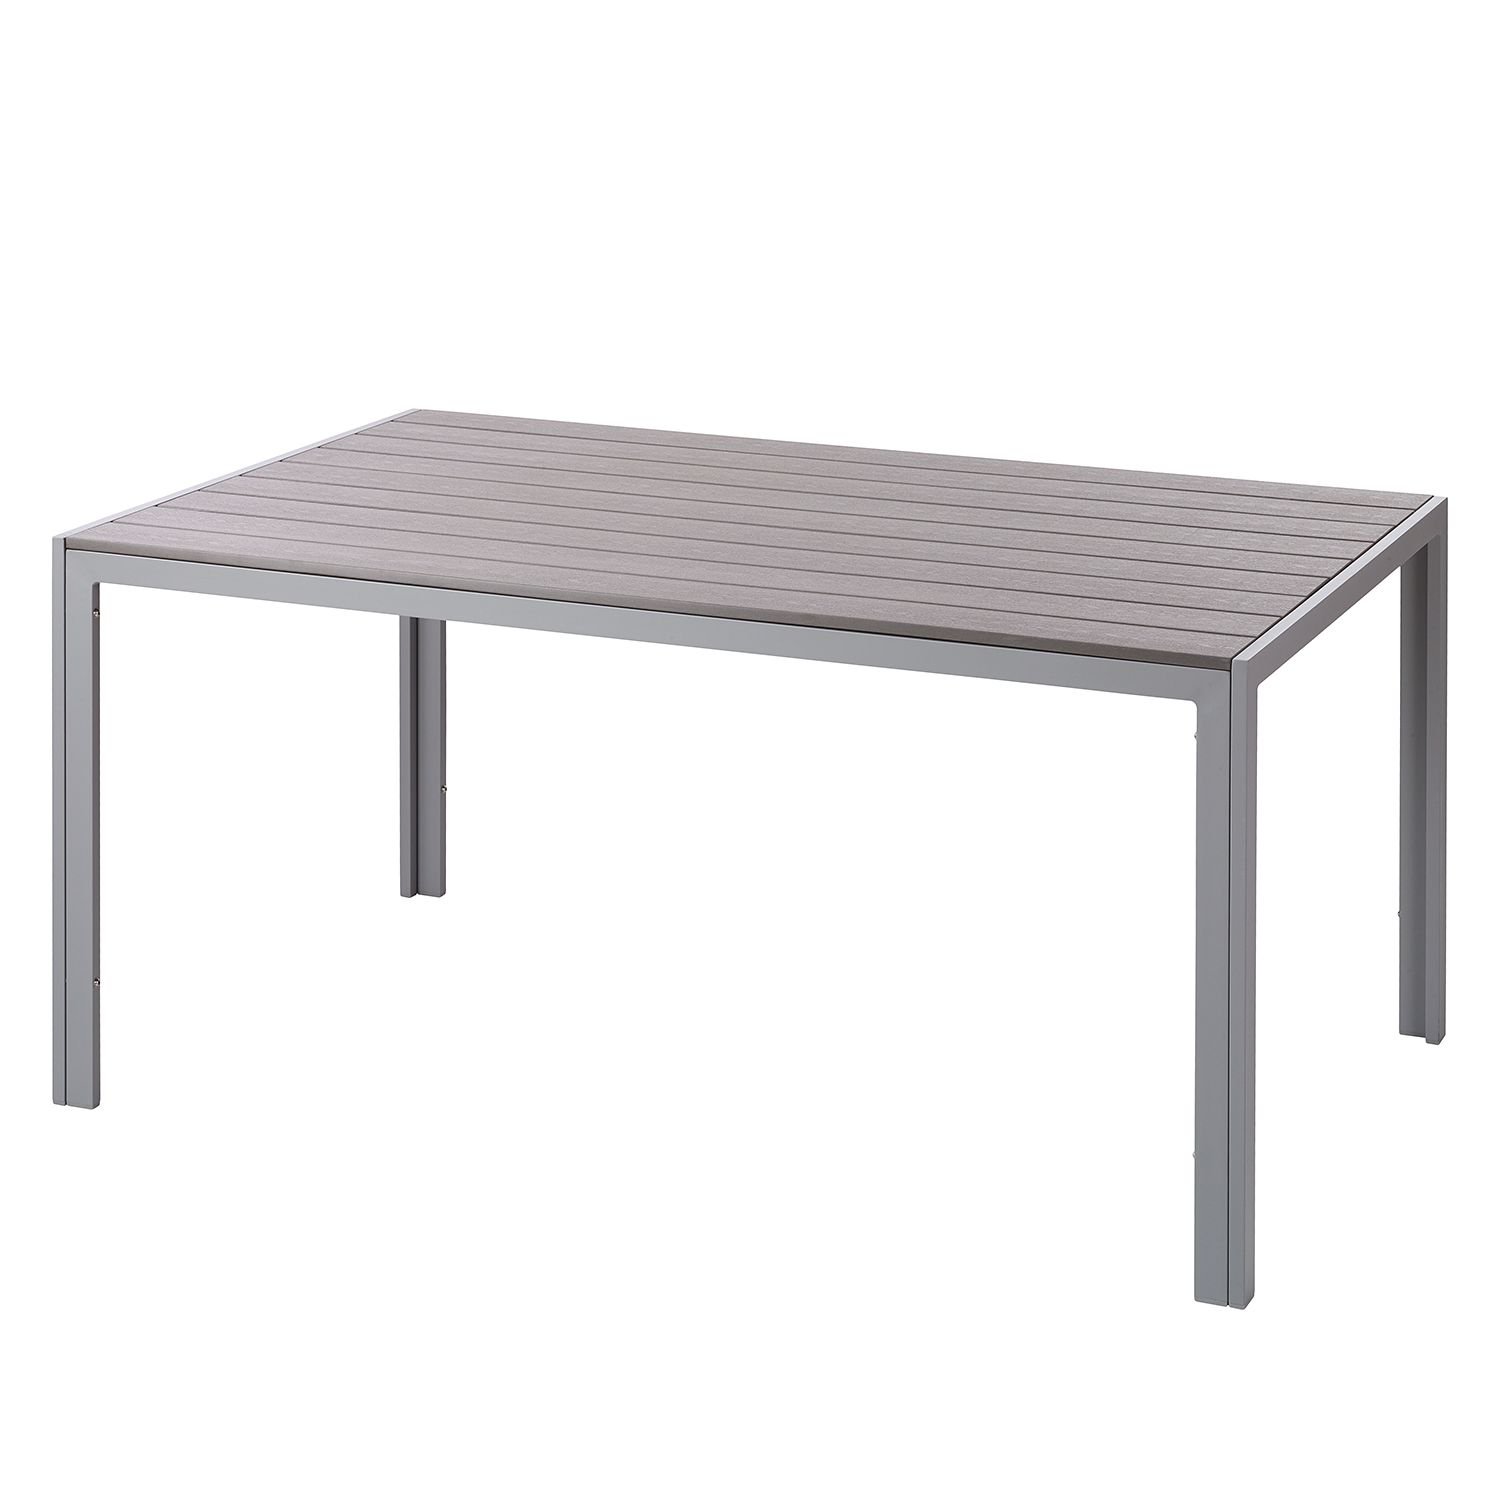 Table de jardin Kudo III